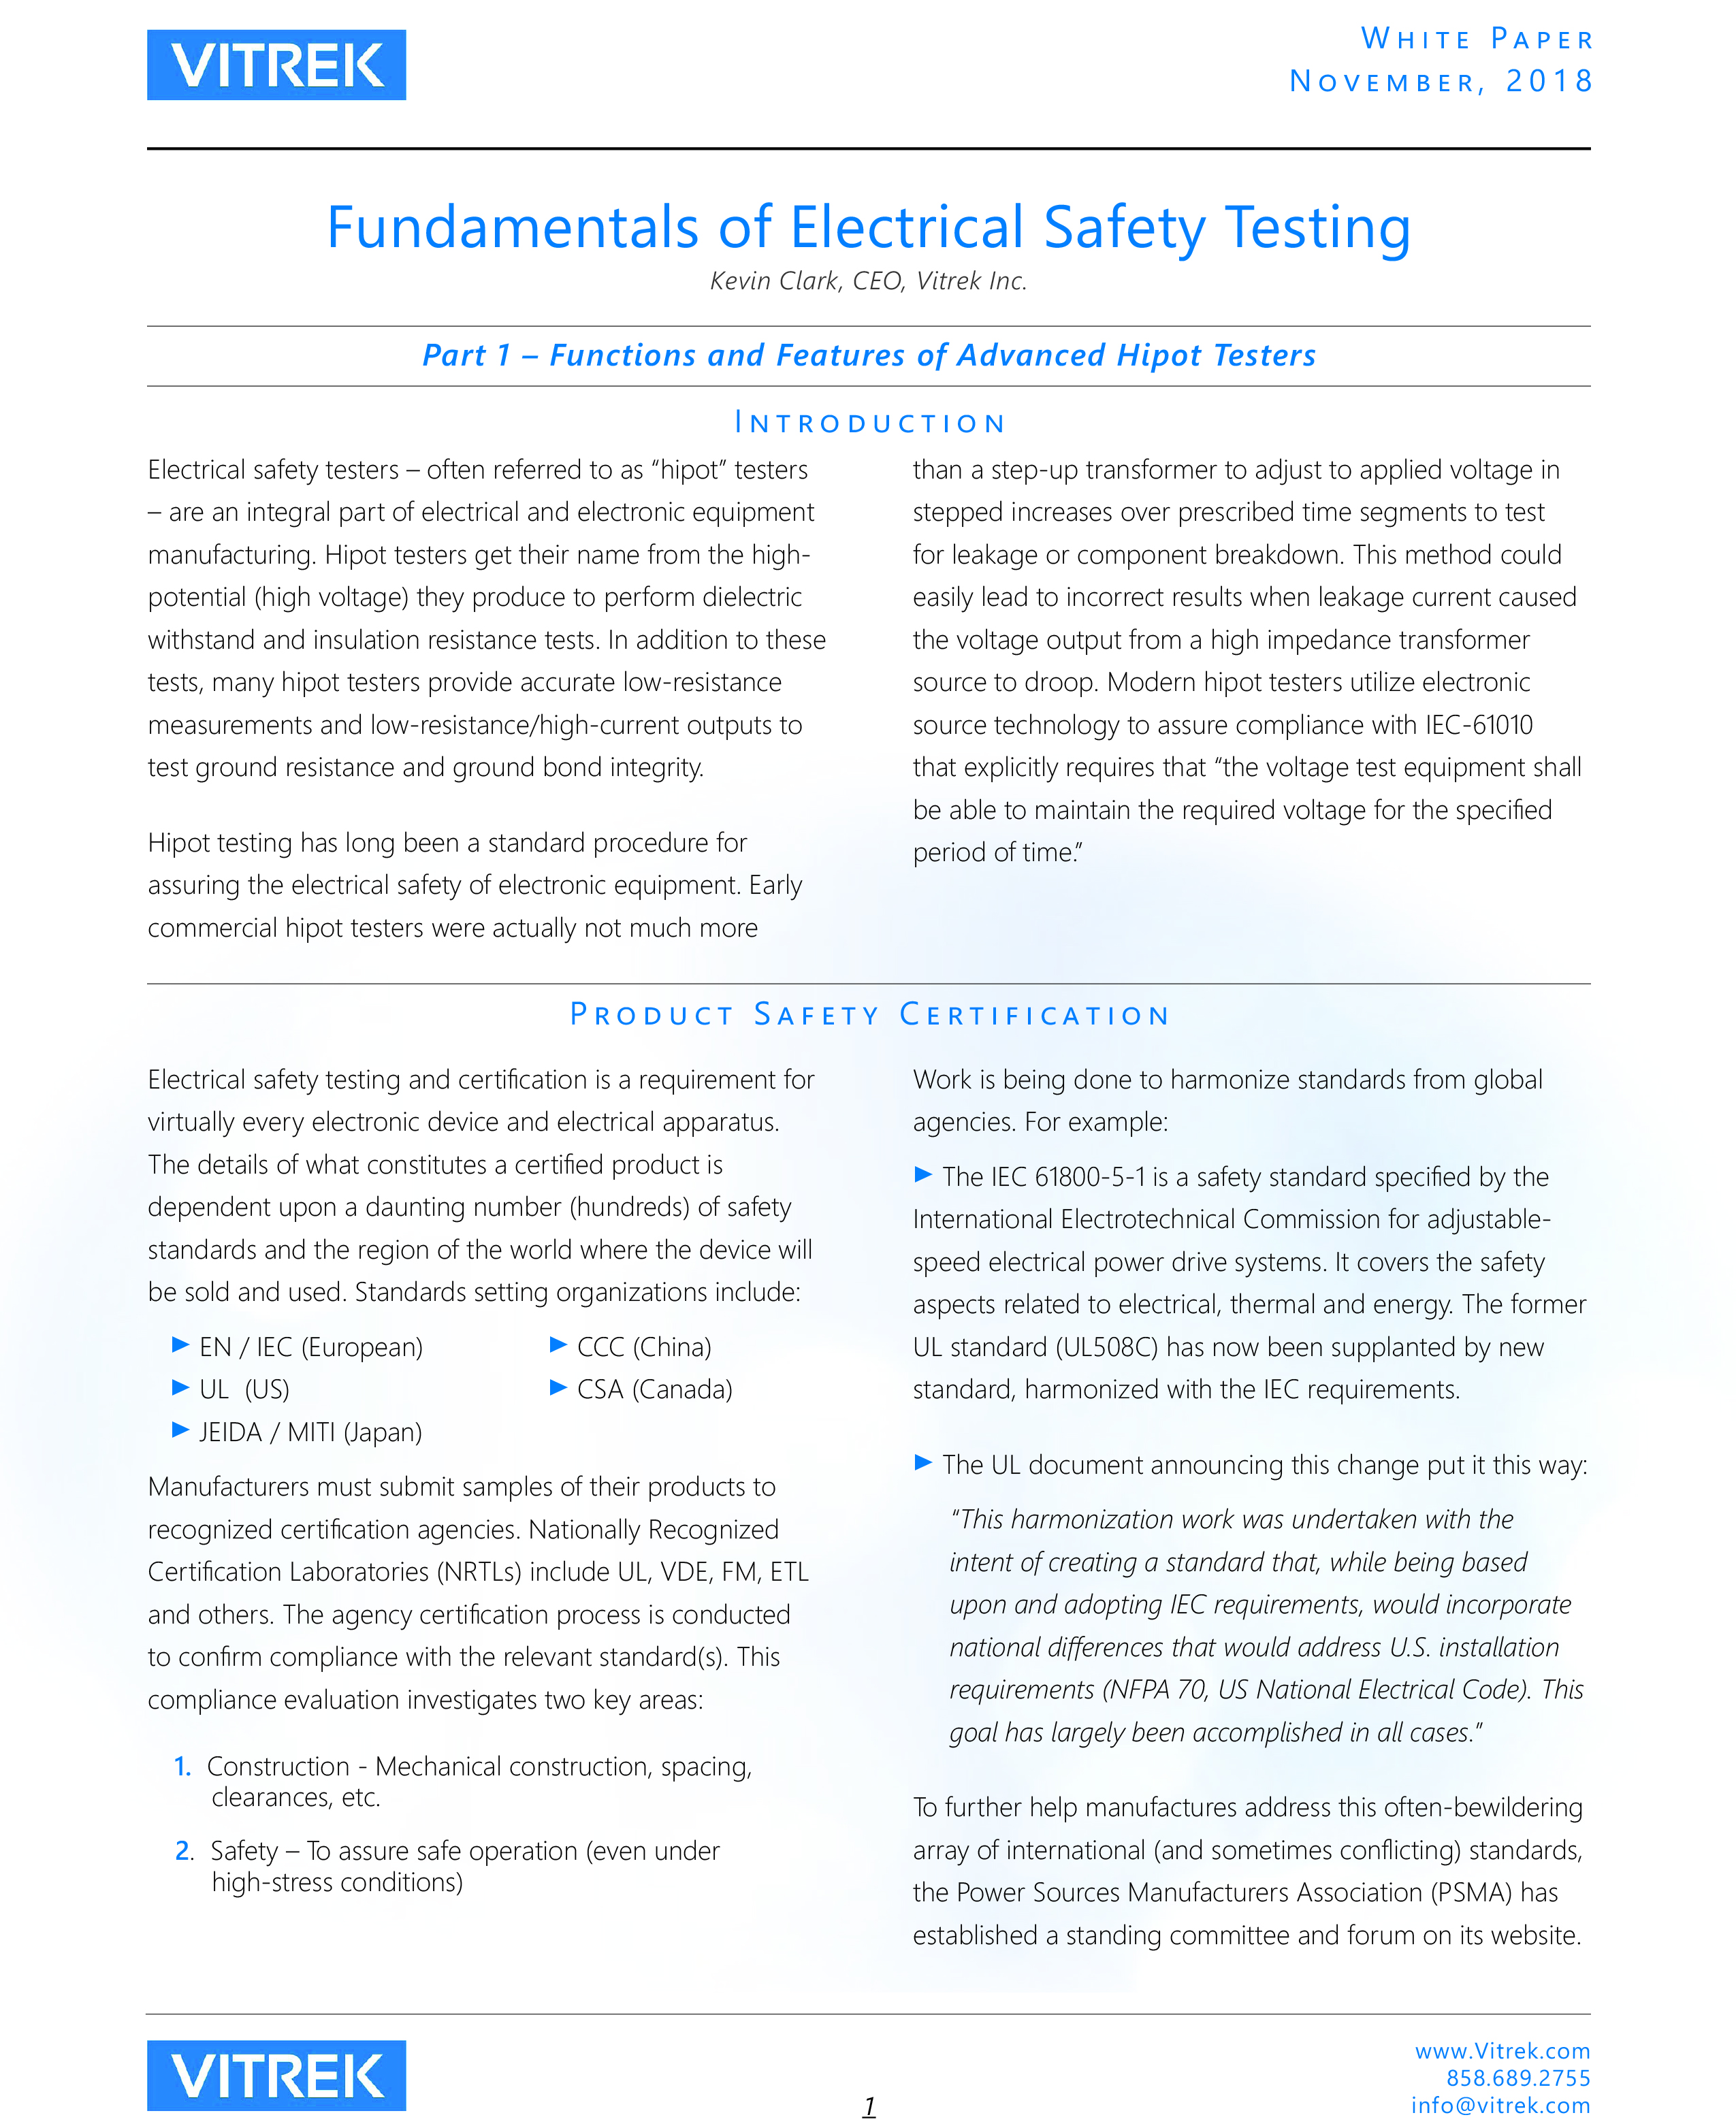 vitrek whitepaper fundamentals of electrical safety testing